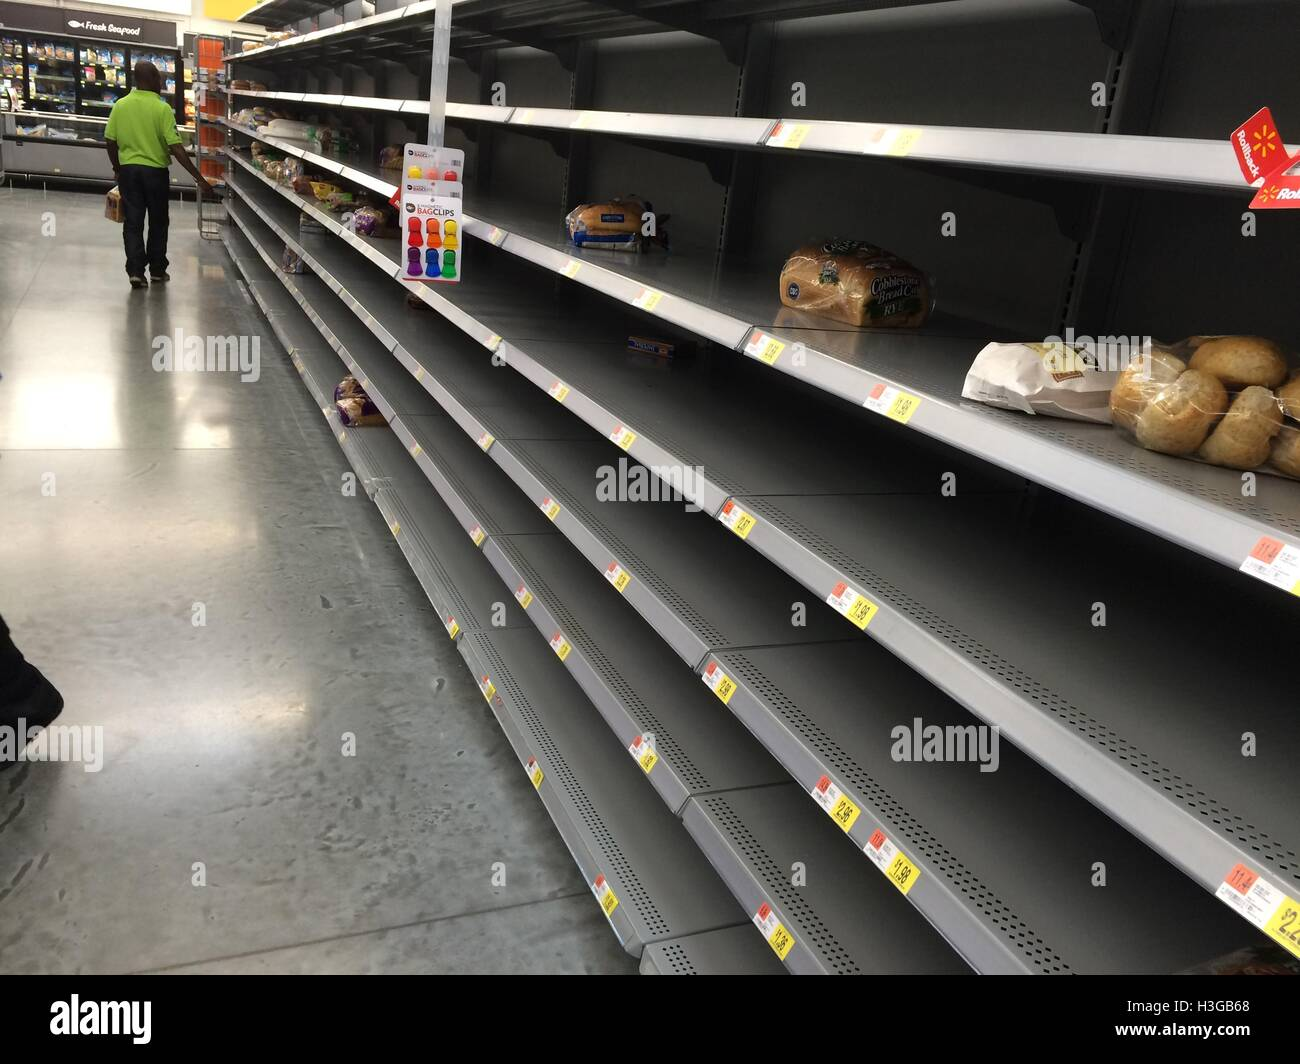 fort lauderdale florida usa 6th oct 2016 shelves usually stocked with